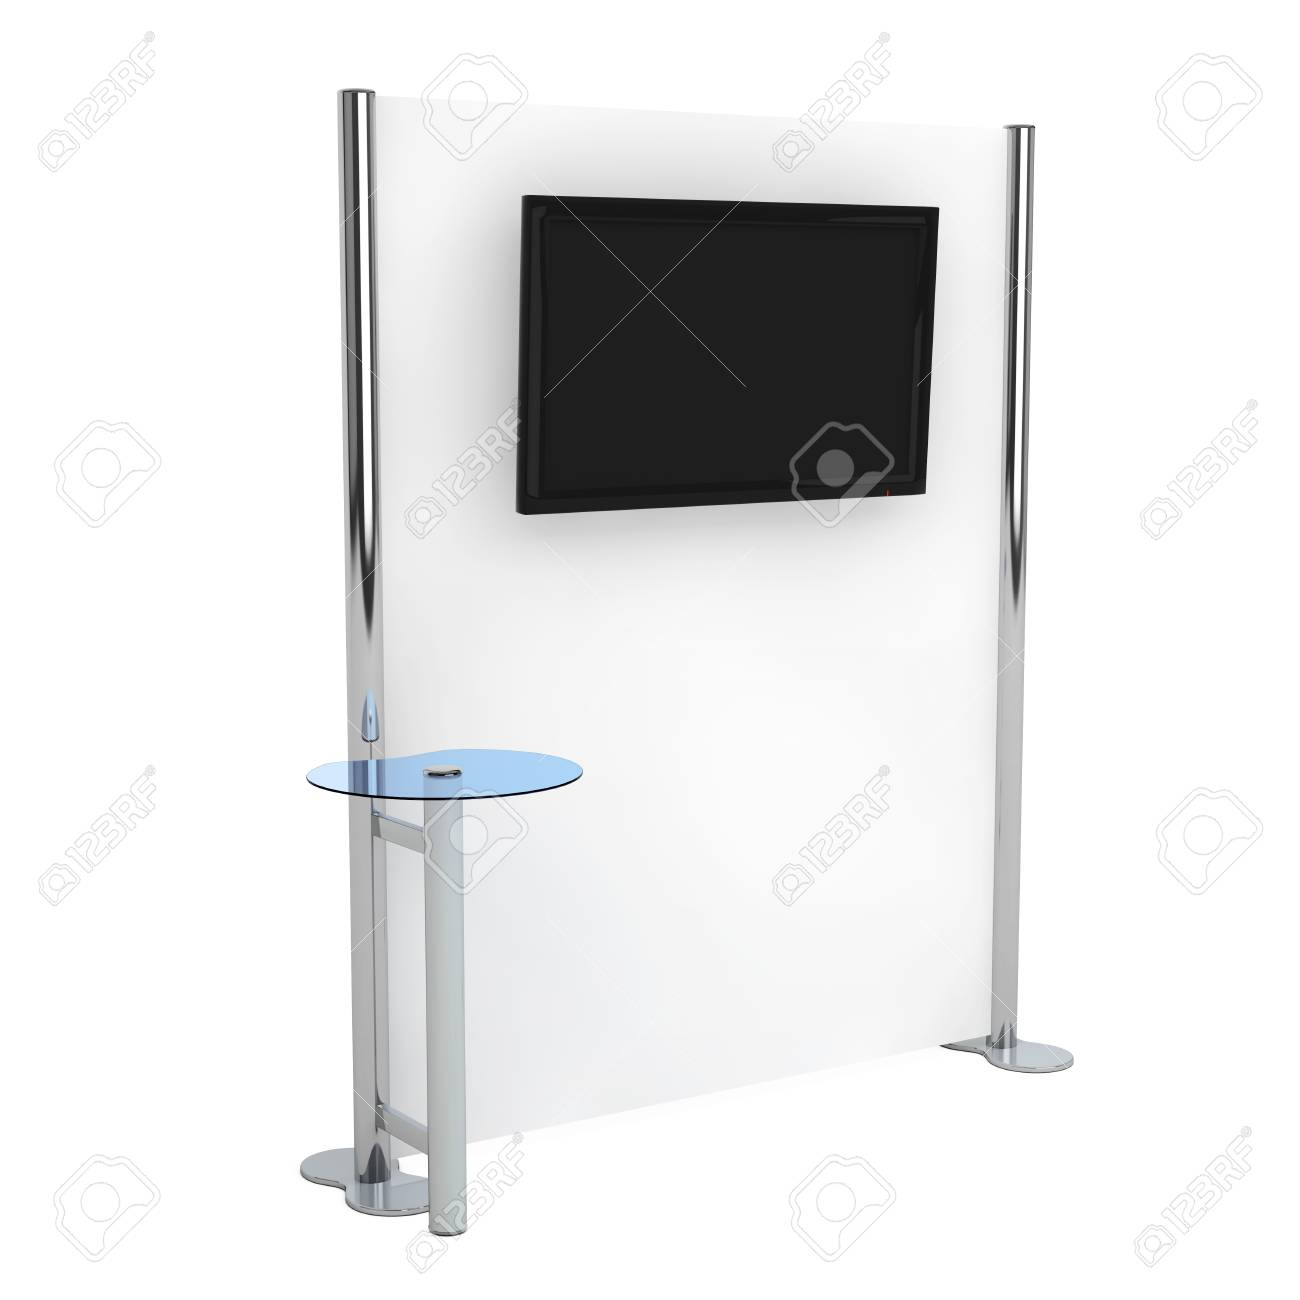 Exhibition Stand Information : Trade commercial exhibition stand with information monitor on